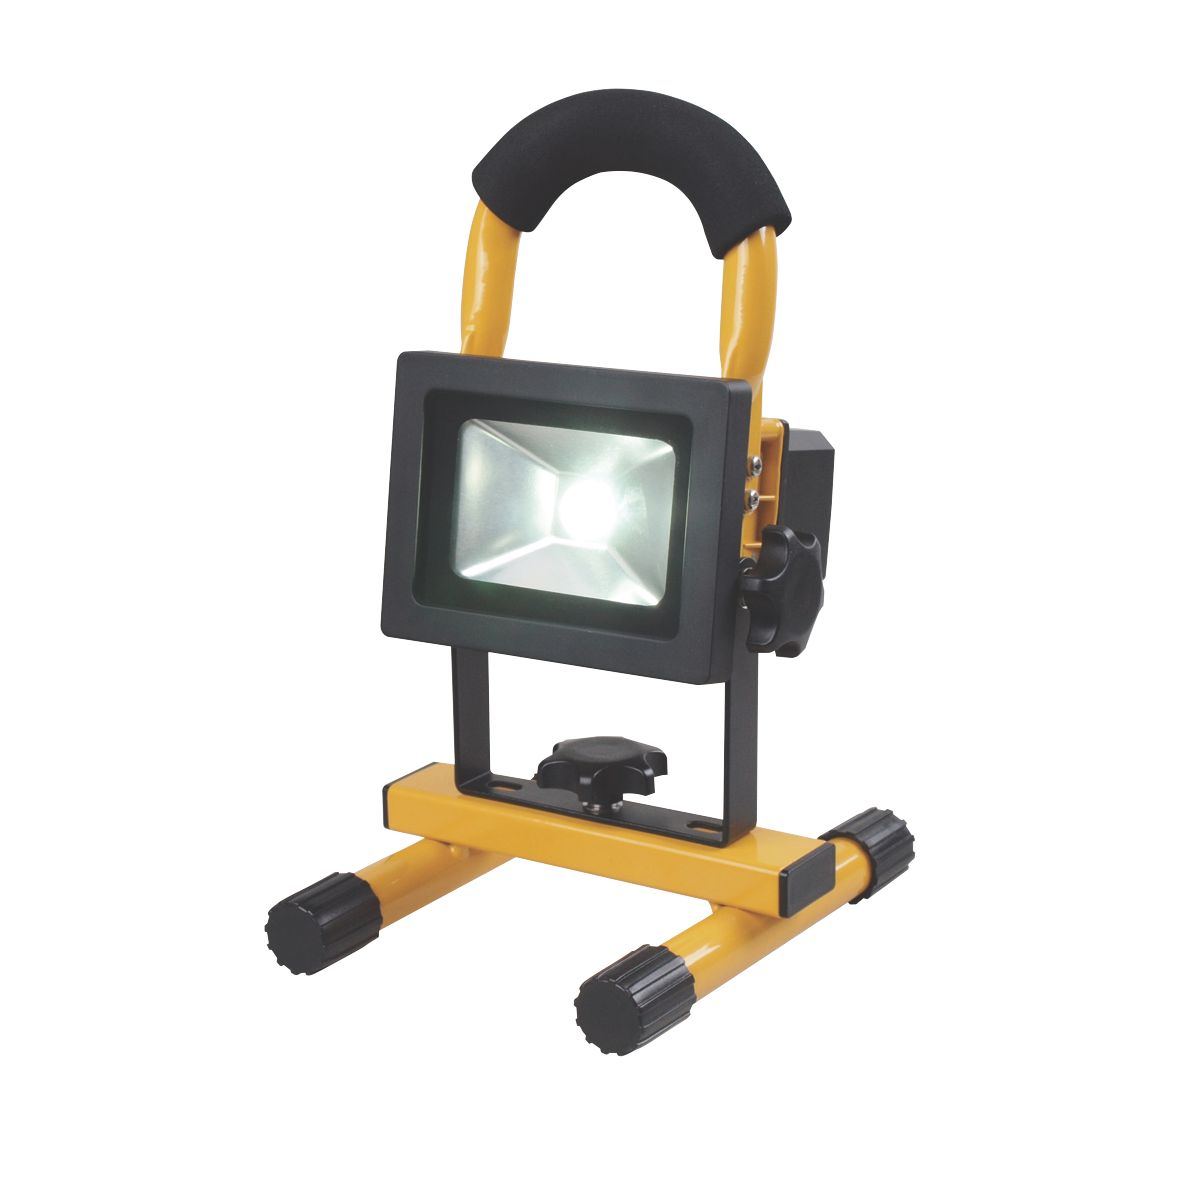 Work Light Screwfix: EXCLUSIVE NEW PRODUCTS AND LATEST INNOVATIONS AVAILABLE